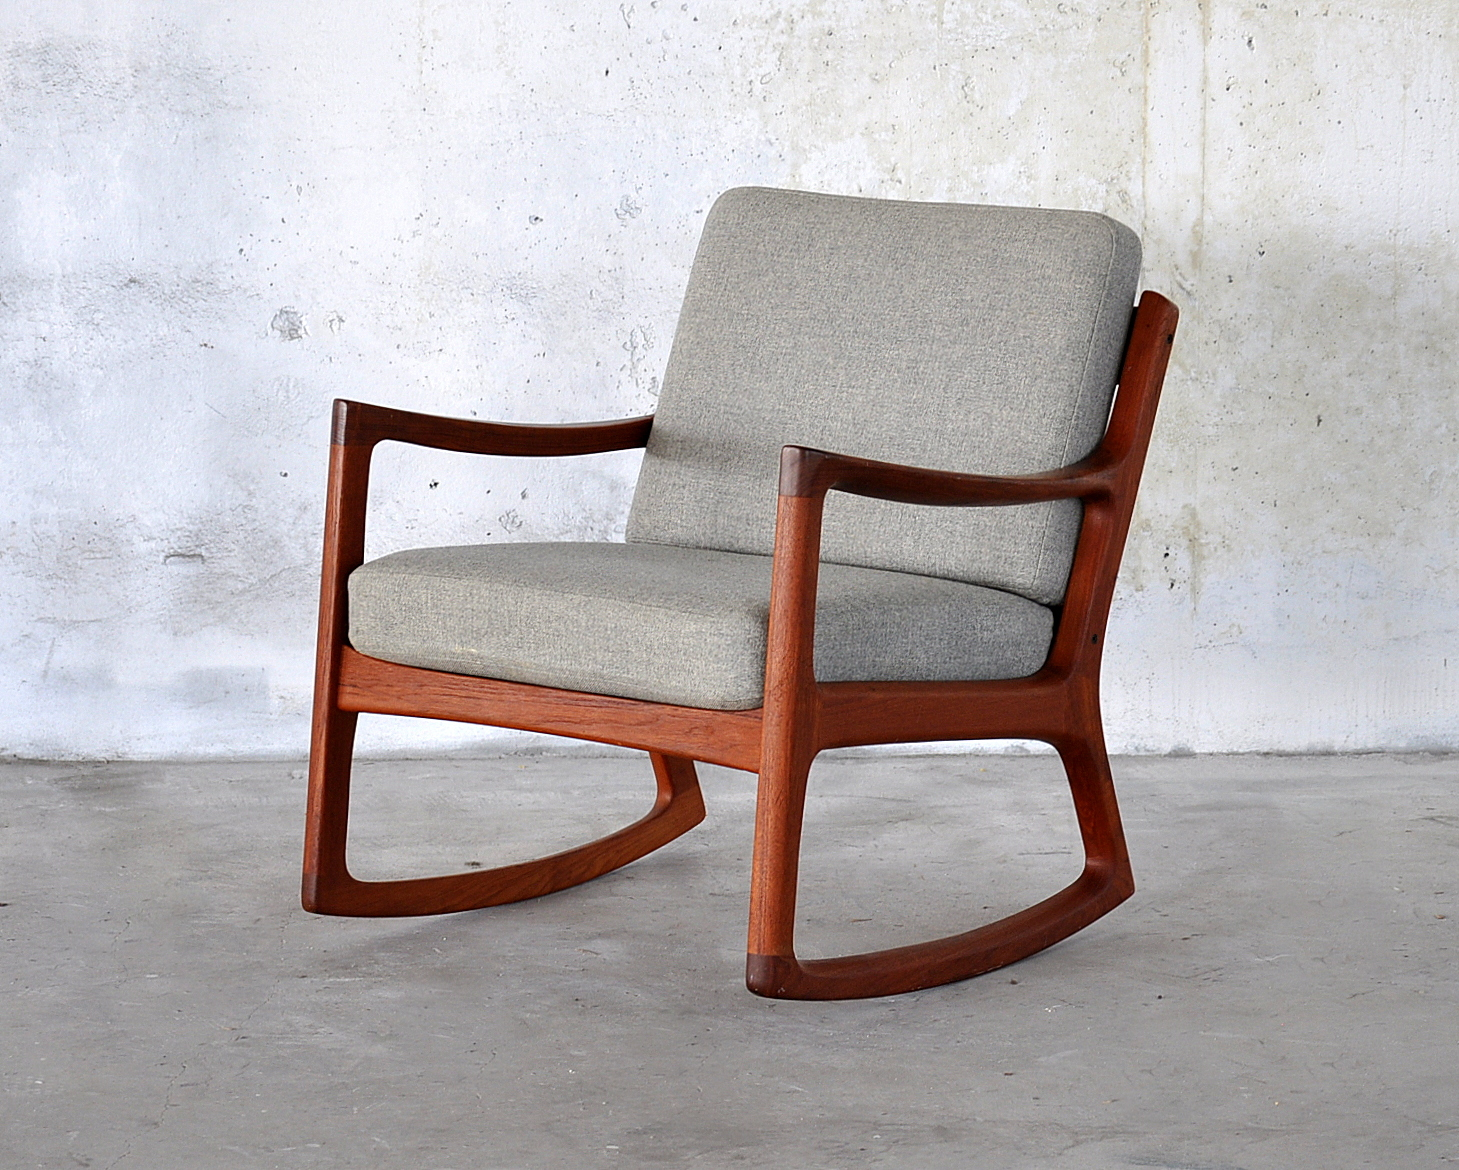 Danish Chair Plans Select Modern Ole Wanscher Teak Rocking Chair